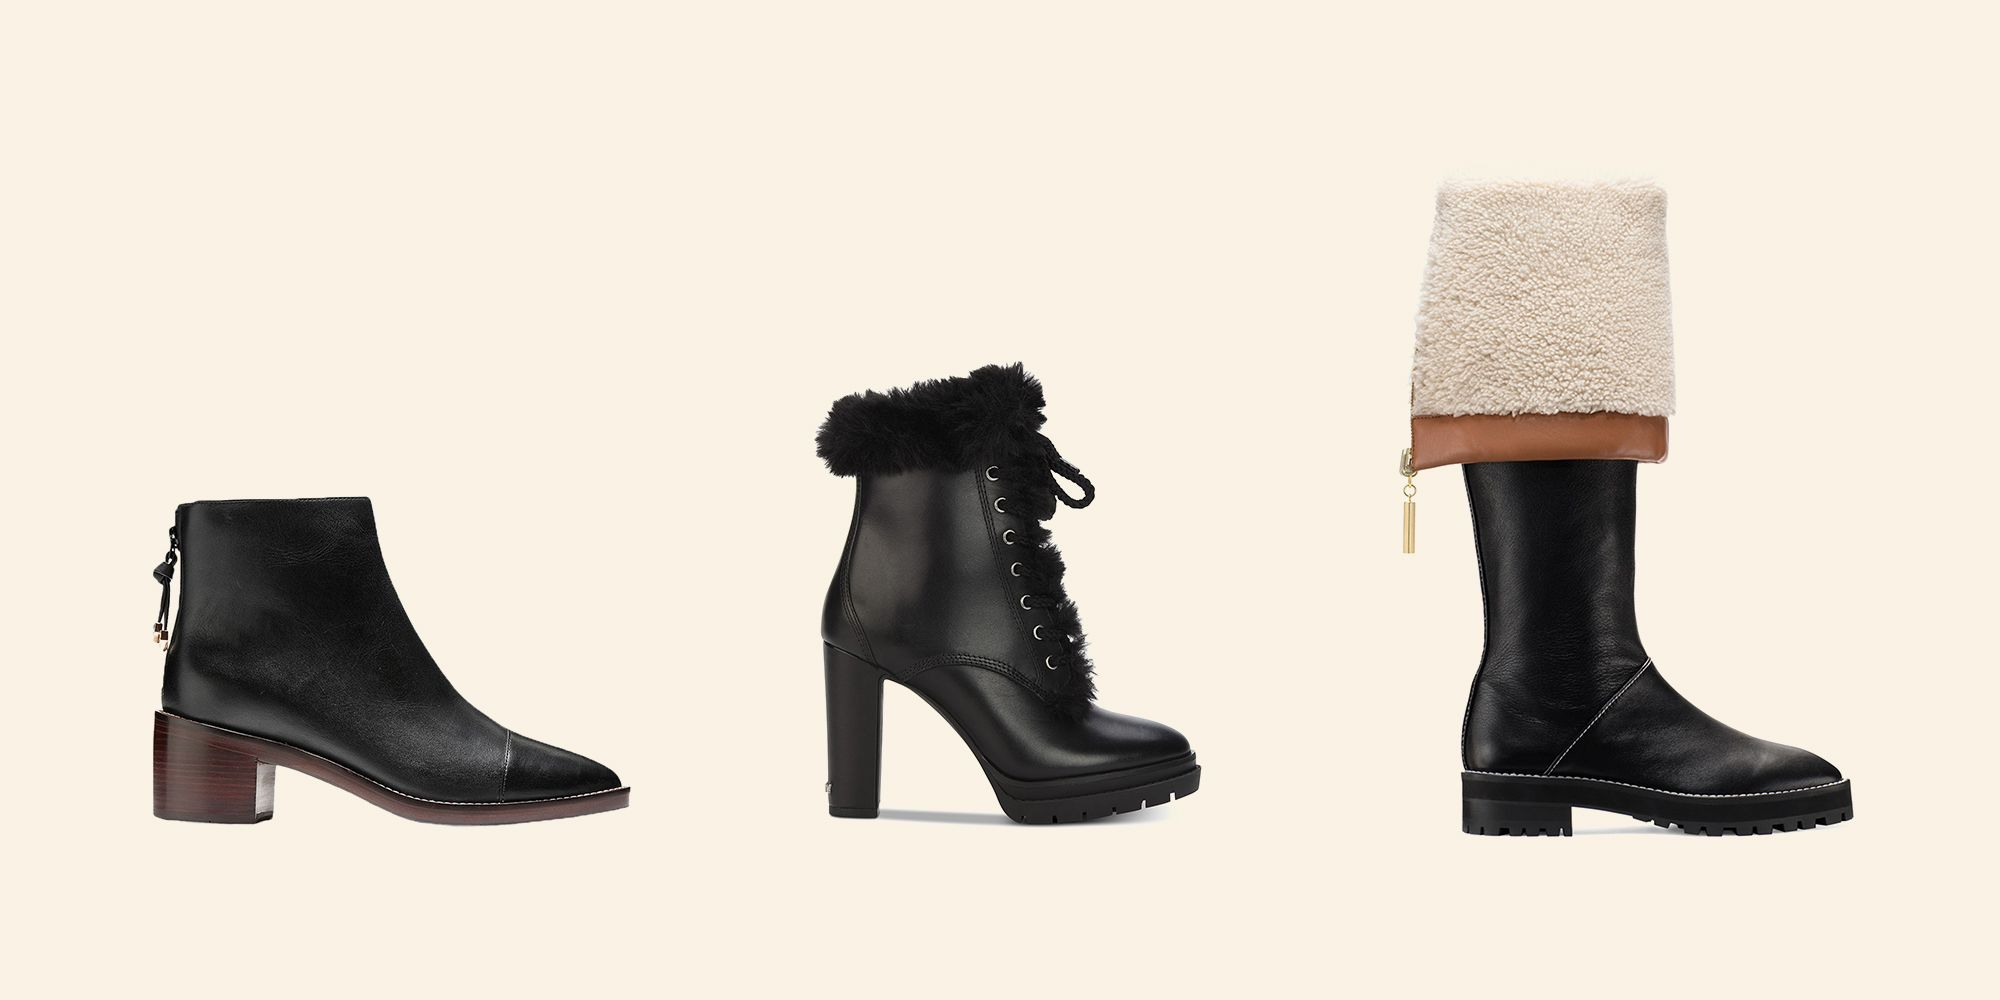 Snow Boots Can Be both Stylish and Functional